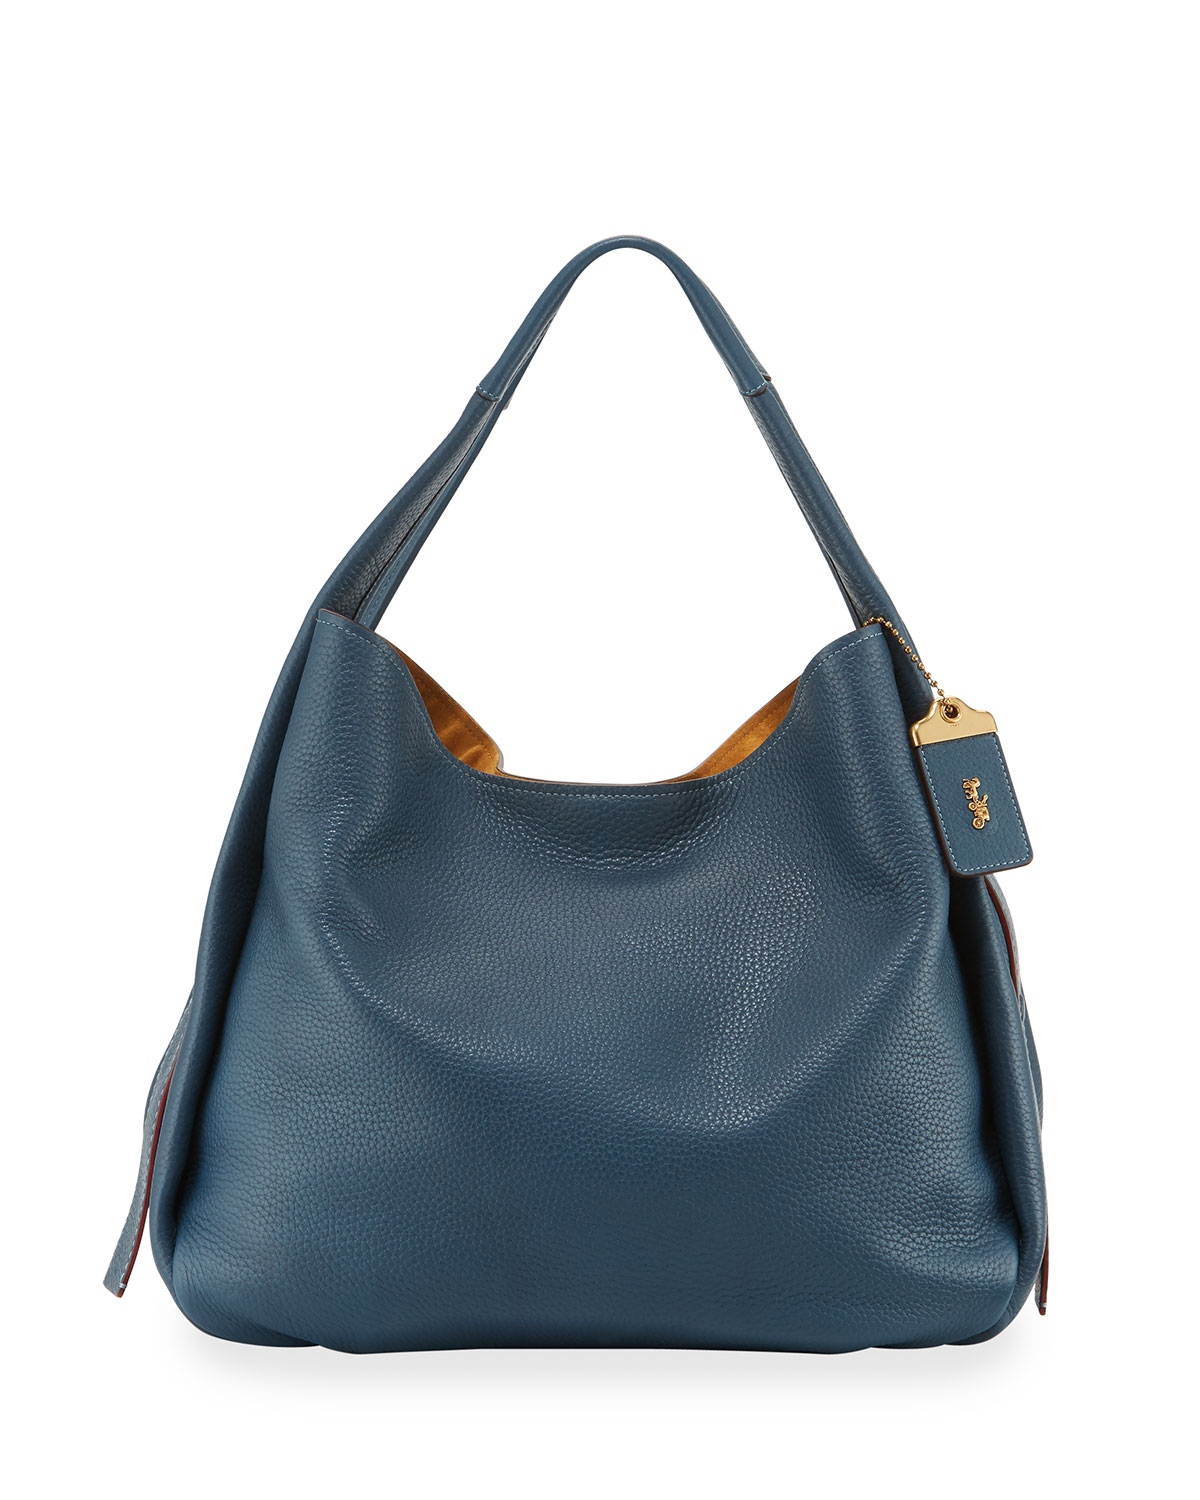 3fe7a9dc001b Coach 1941 Glove-Tanned Pebbled Leather Hobo Bag